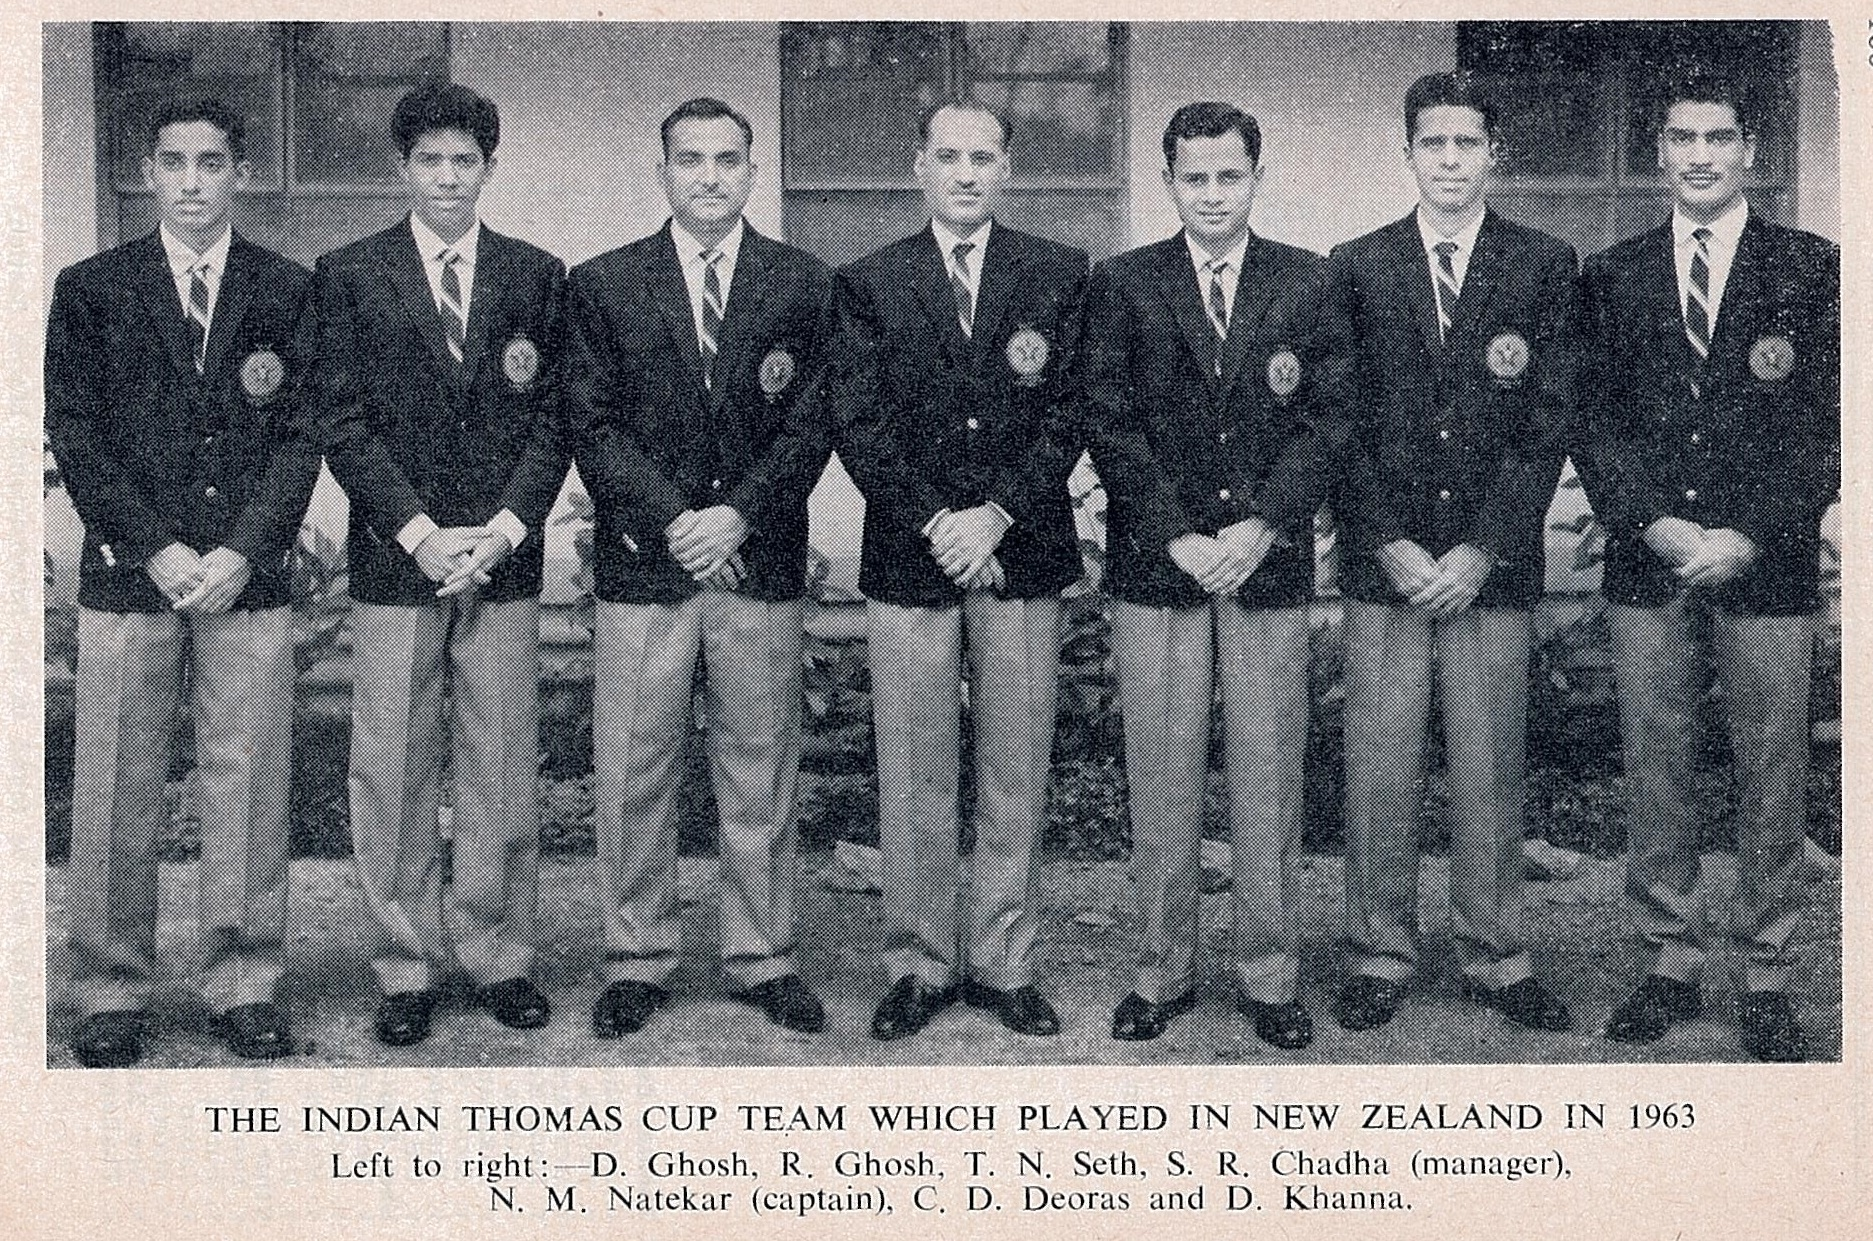 Sriram chadha(centre) with indian team in 1963 - ibf handbook for (63-64)